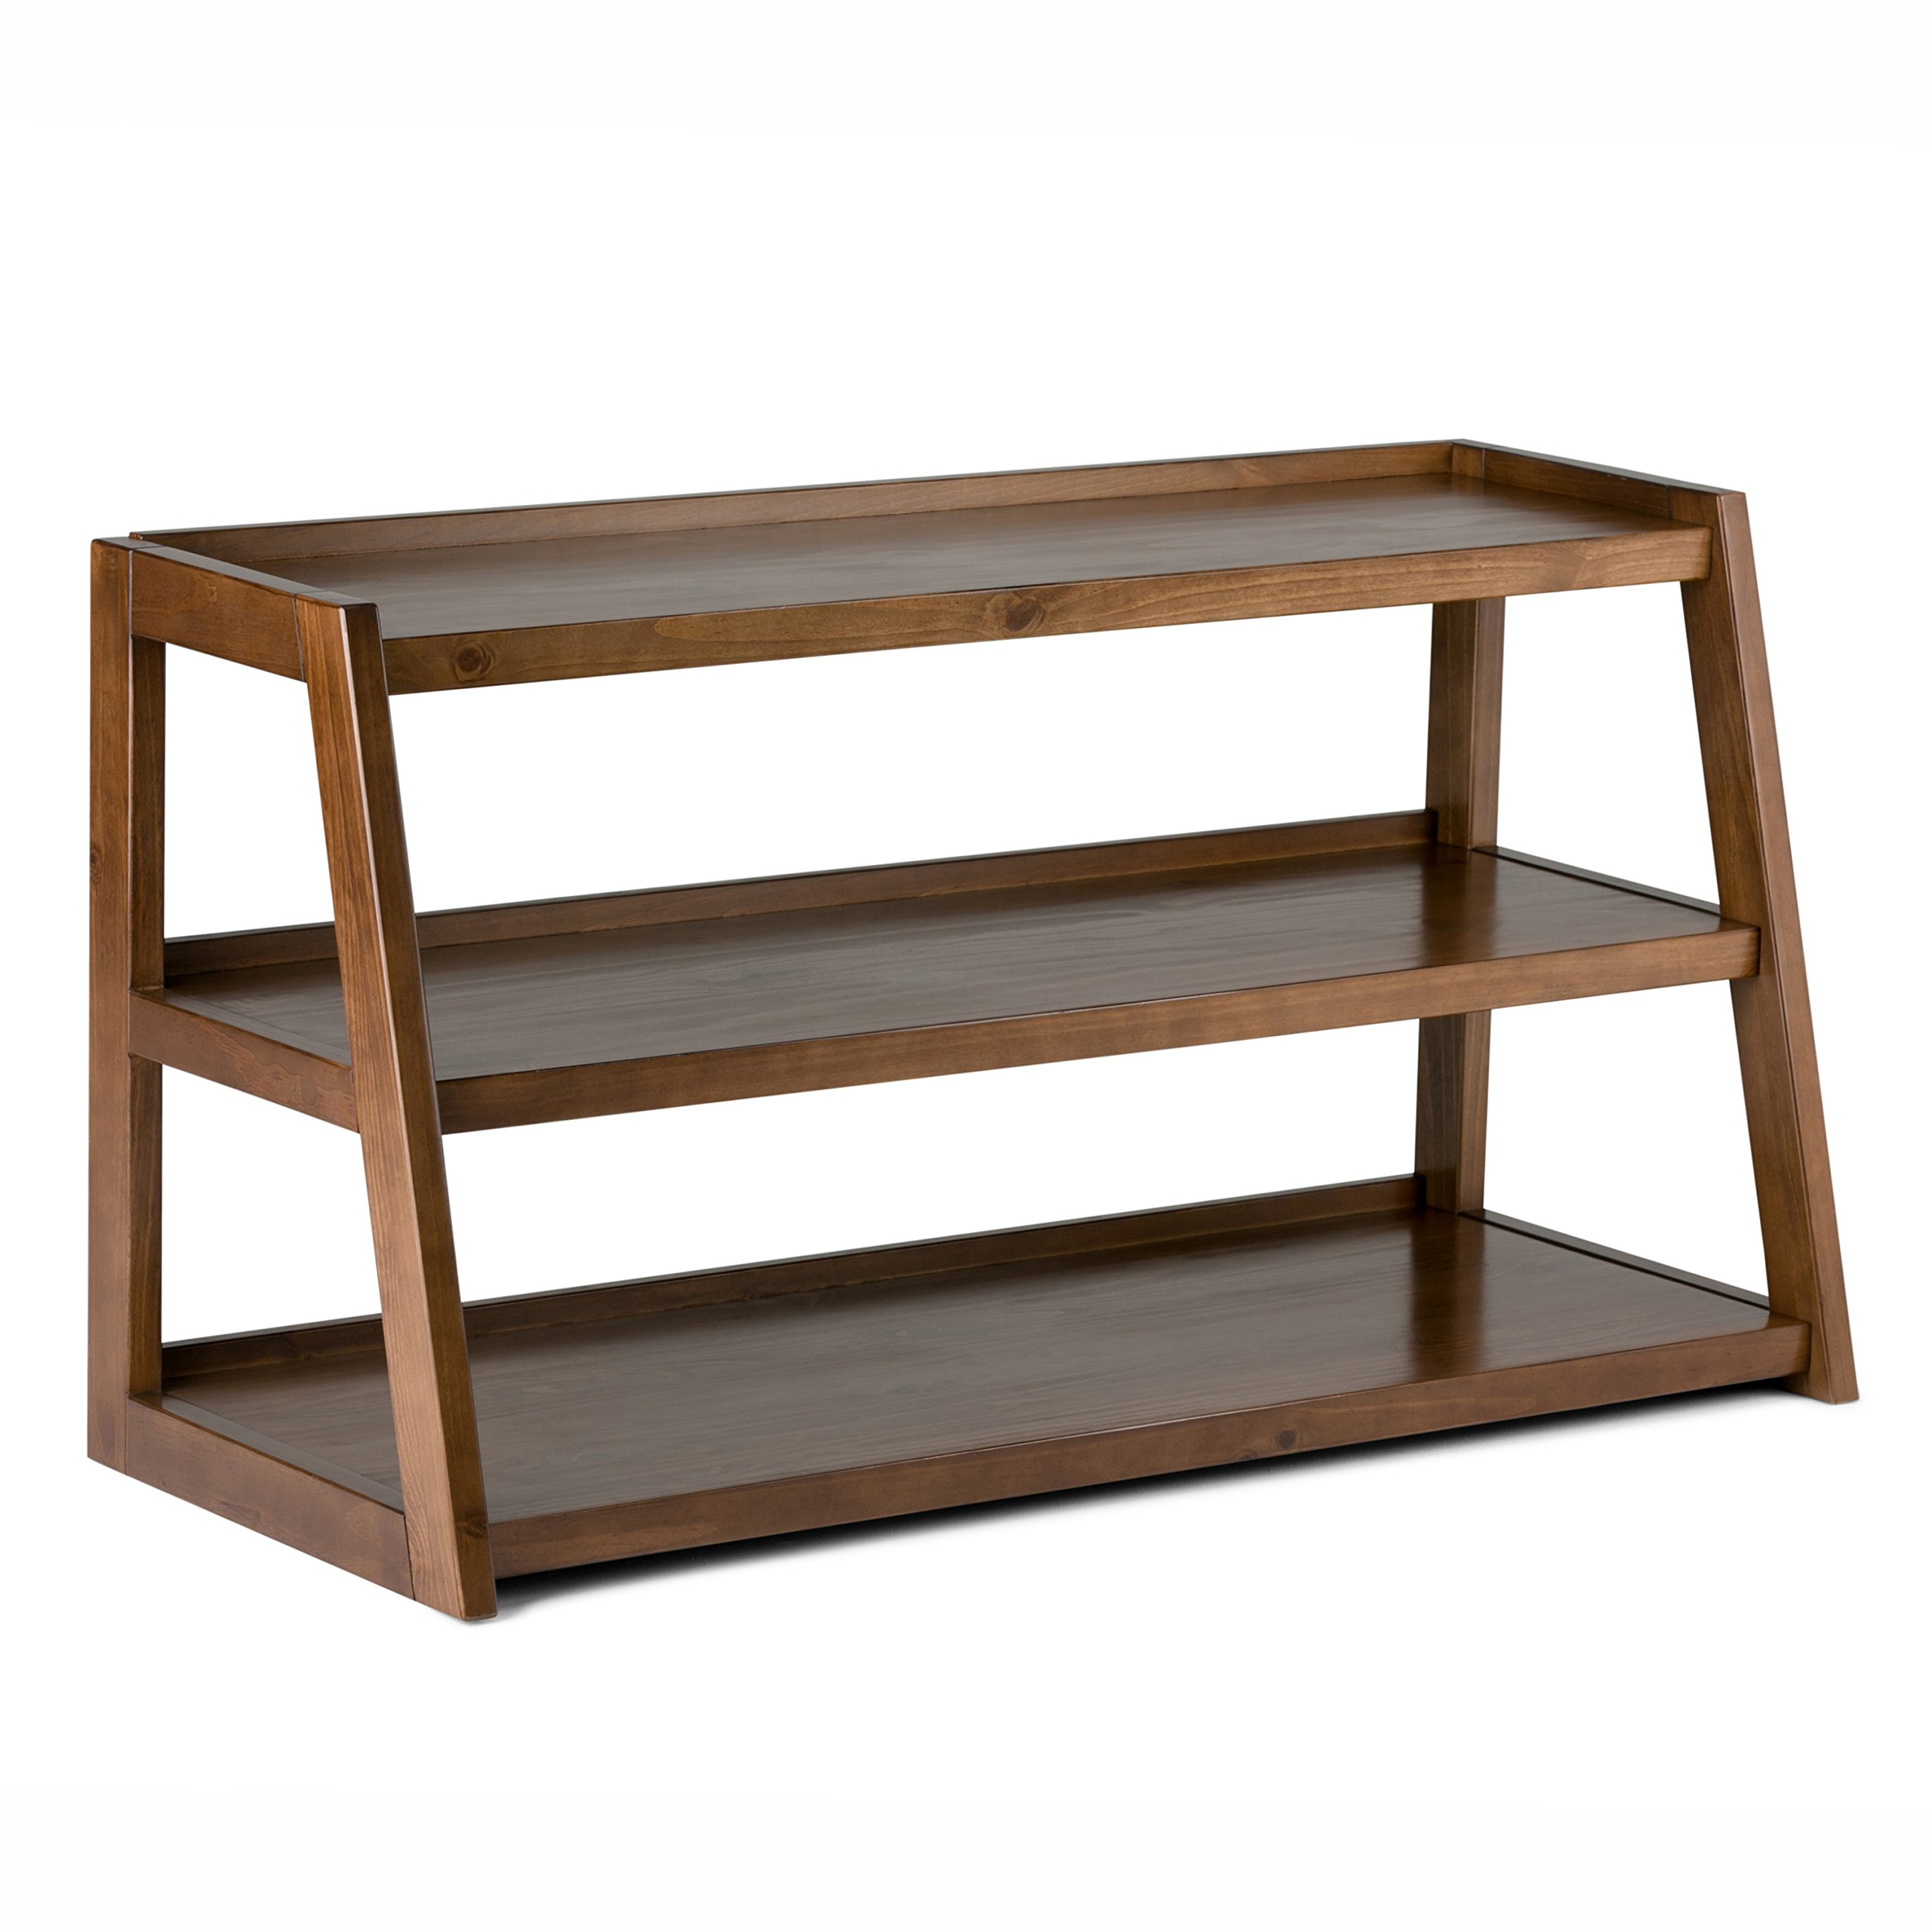 Simpli Home 3AXCSAW-04 Sawhorse Solid Wood 48 inch Wide Modern Industrial TV Media Stand in Medium Saddle Brown  For TVs up to 50 inches by Simpli Home